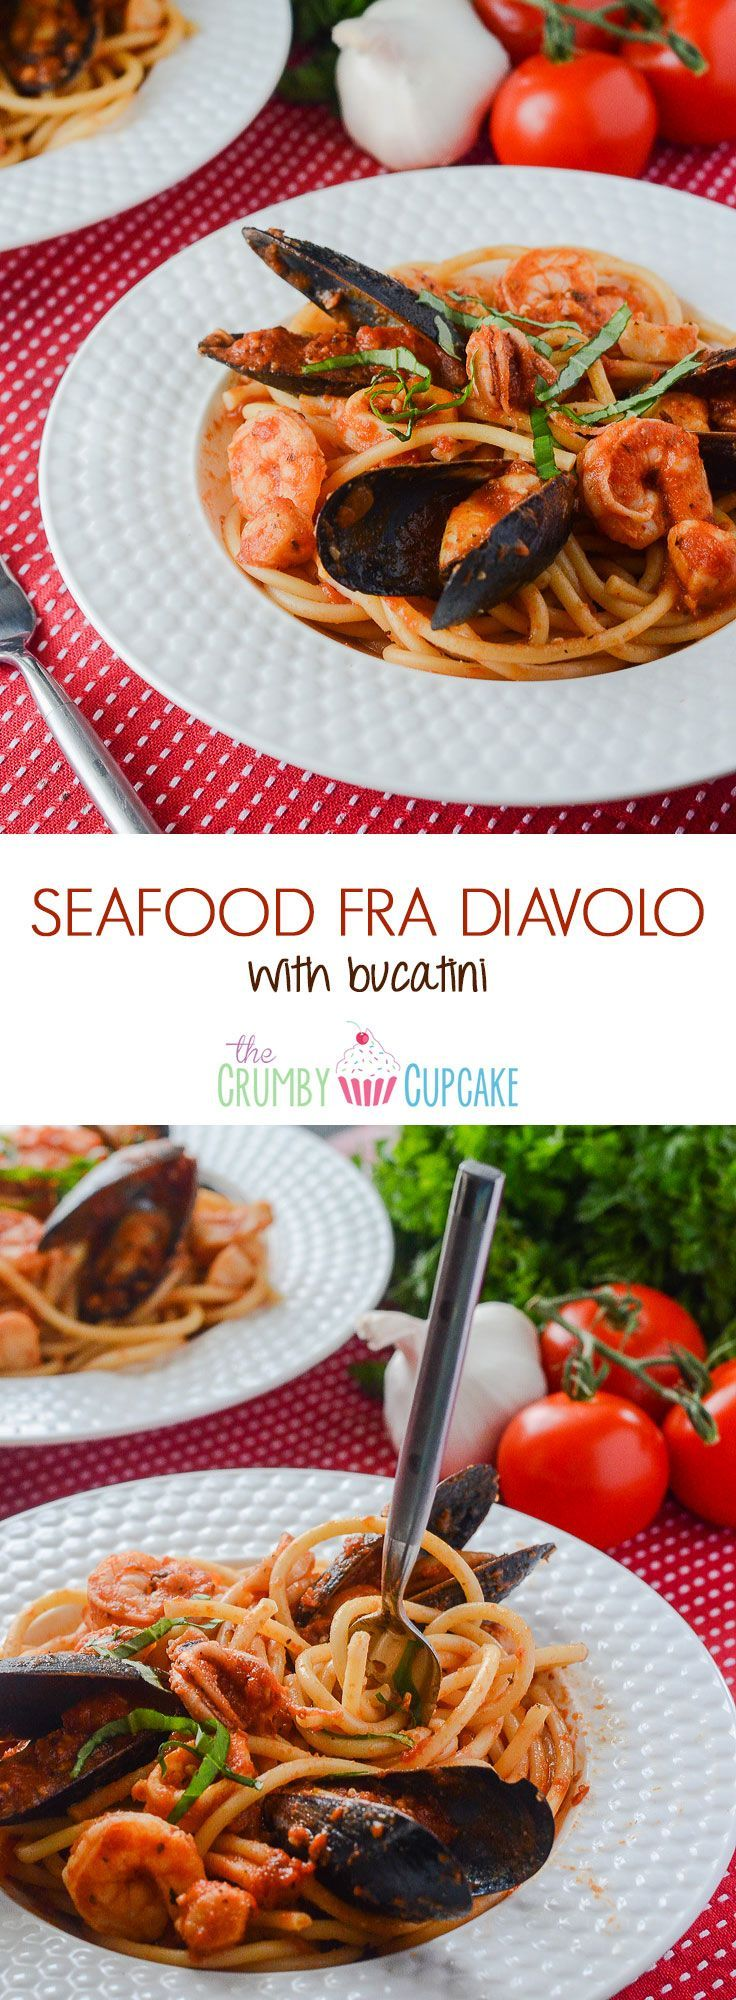 Seafood Fra Diavolo with Bucatini | Bucatini pasta, crowned with an array of fresh seafood that's bursting with spicy Italian flavor and lots of garlic - it's a spicy seafood spaghetti extravaganza!